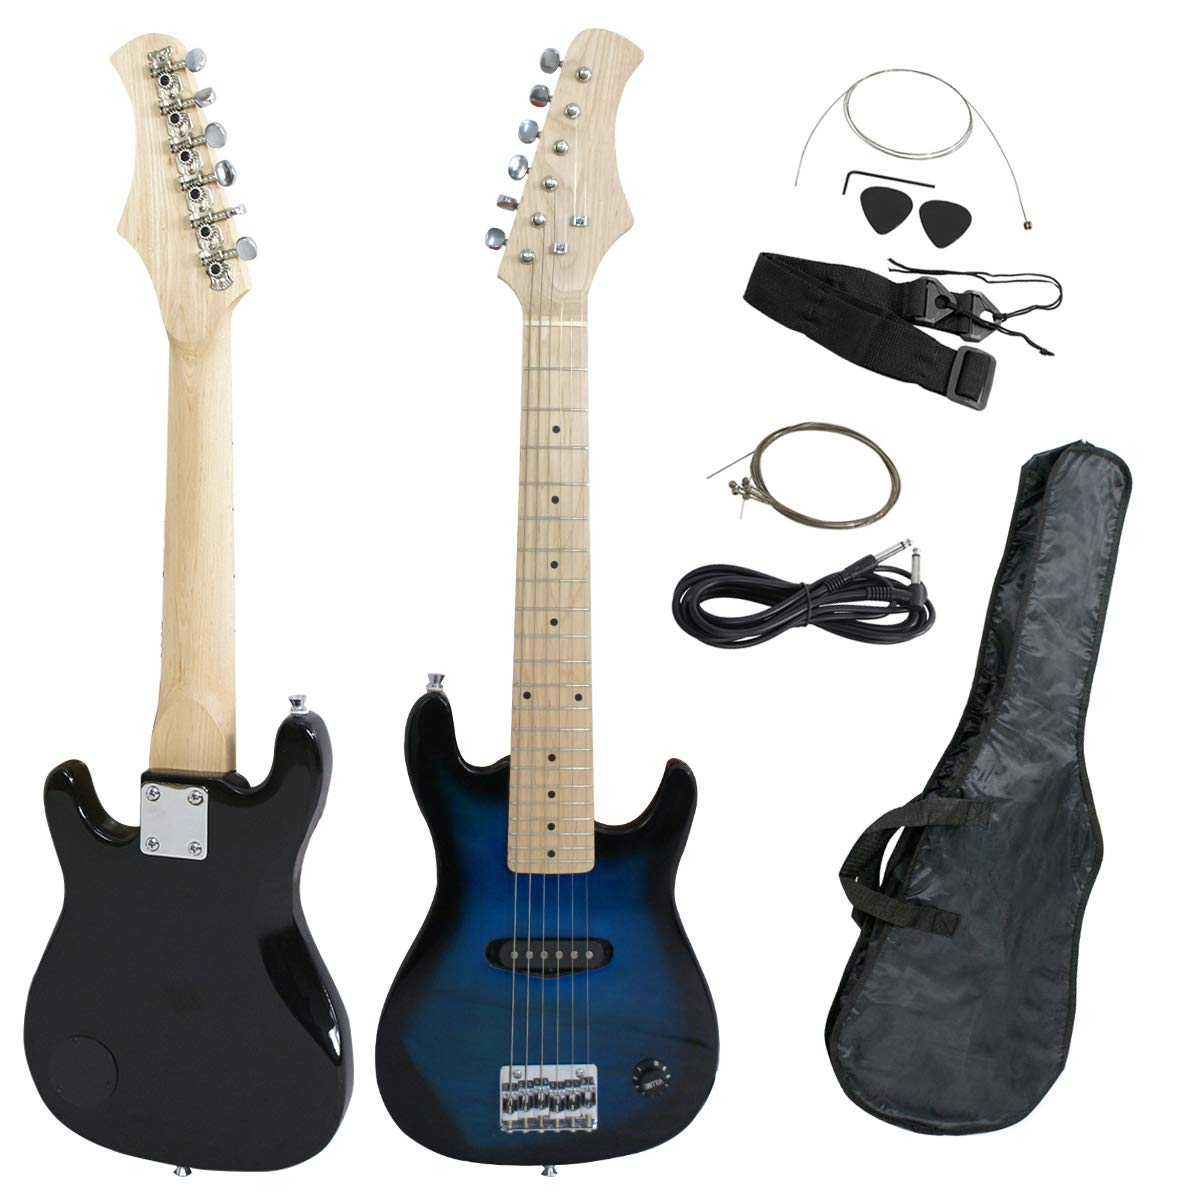 "Smartxchoices 30"" Mini Kids Blue Electric Guitar Bundle Kit Bass Guitar for Beginners with Gig Bag,Cable,Strap,Picks Combo Package Accessories Children Holiday Gifts (Blue, No Amp)"